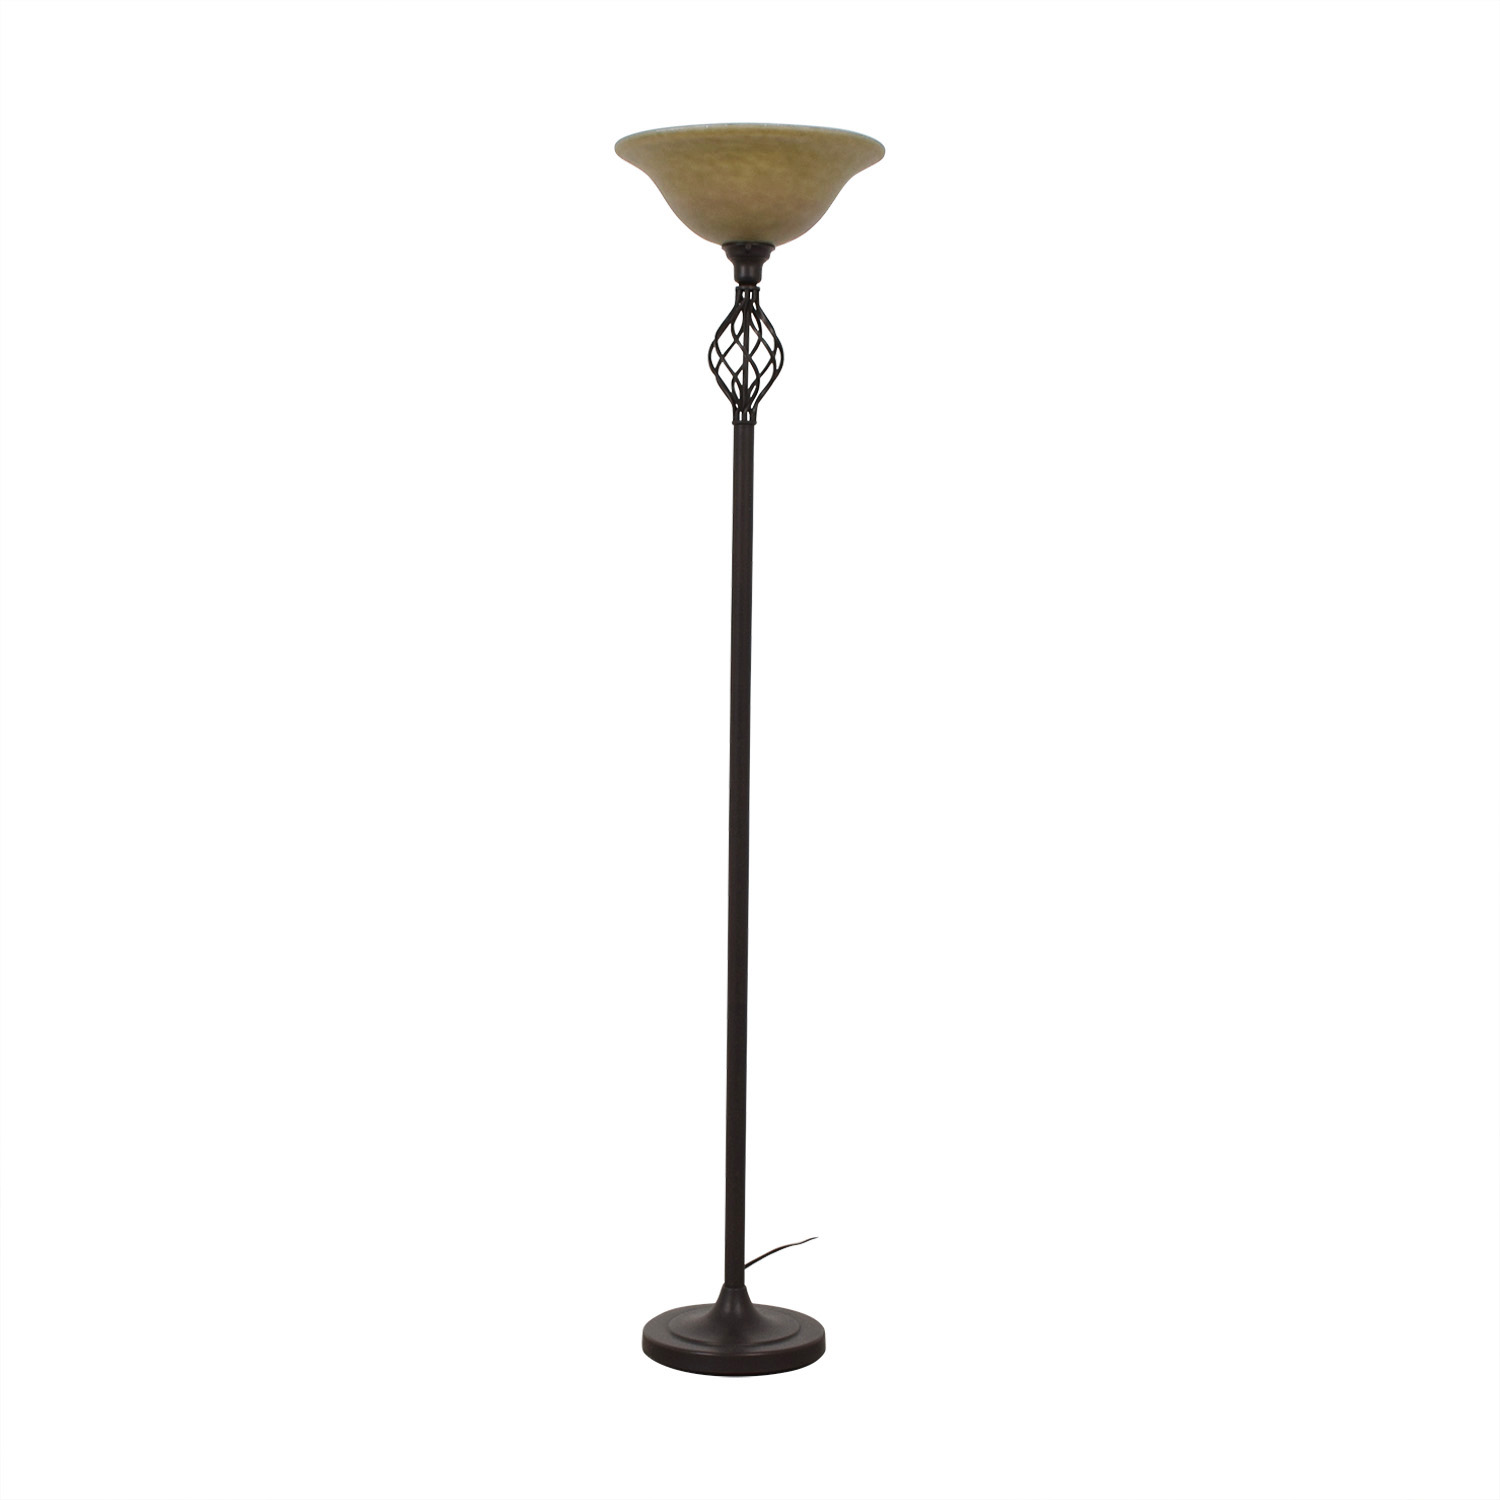 shop Bed Bath & Beyond Halogen Floor Lamp Bed Bath & Beyond Lamps